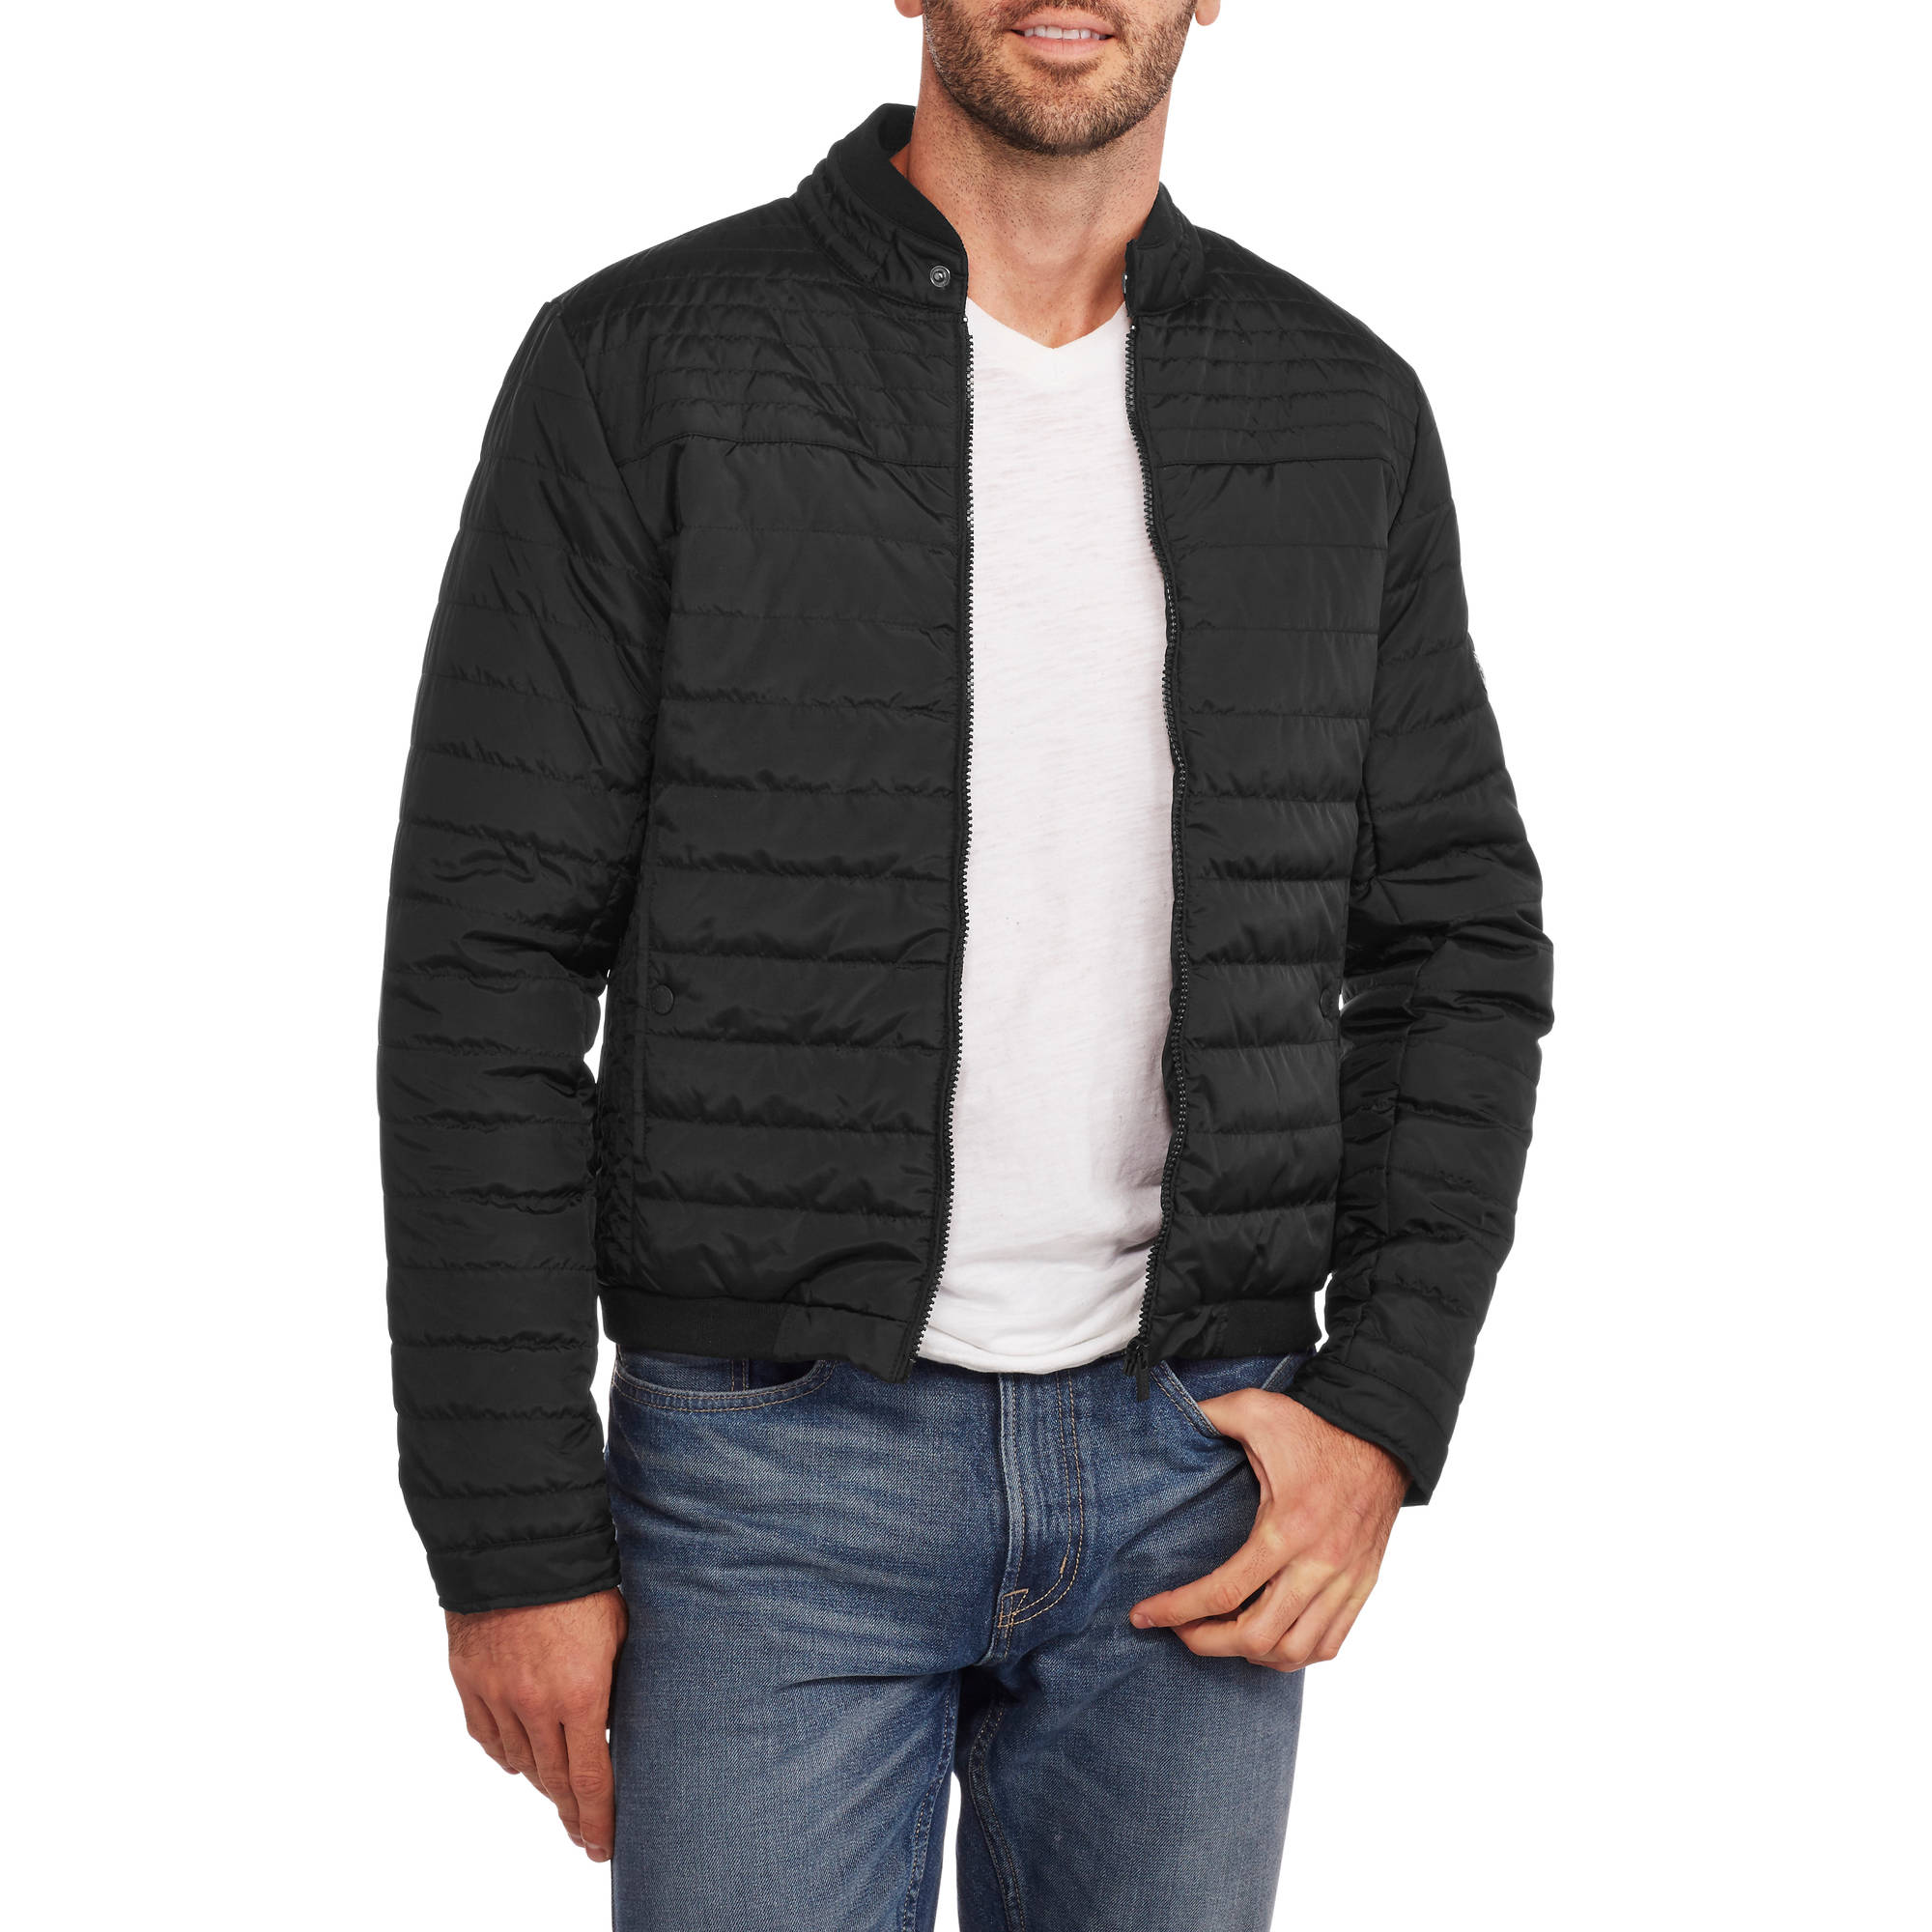 Repair Men's Zip Front Jacket